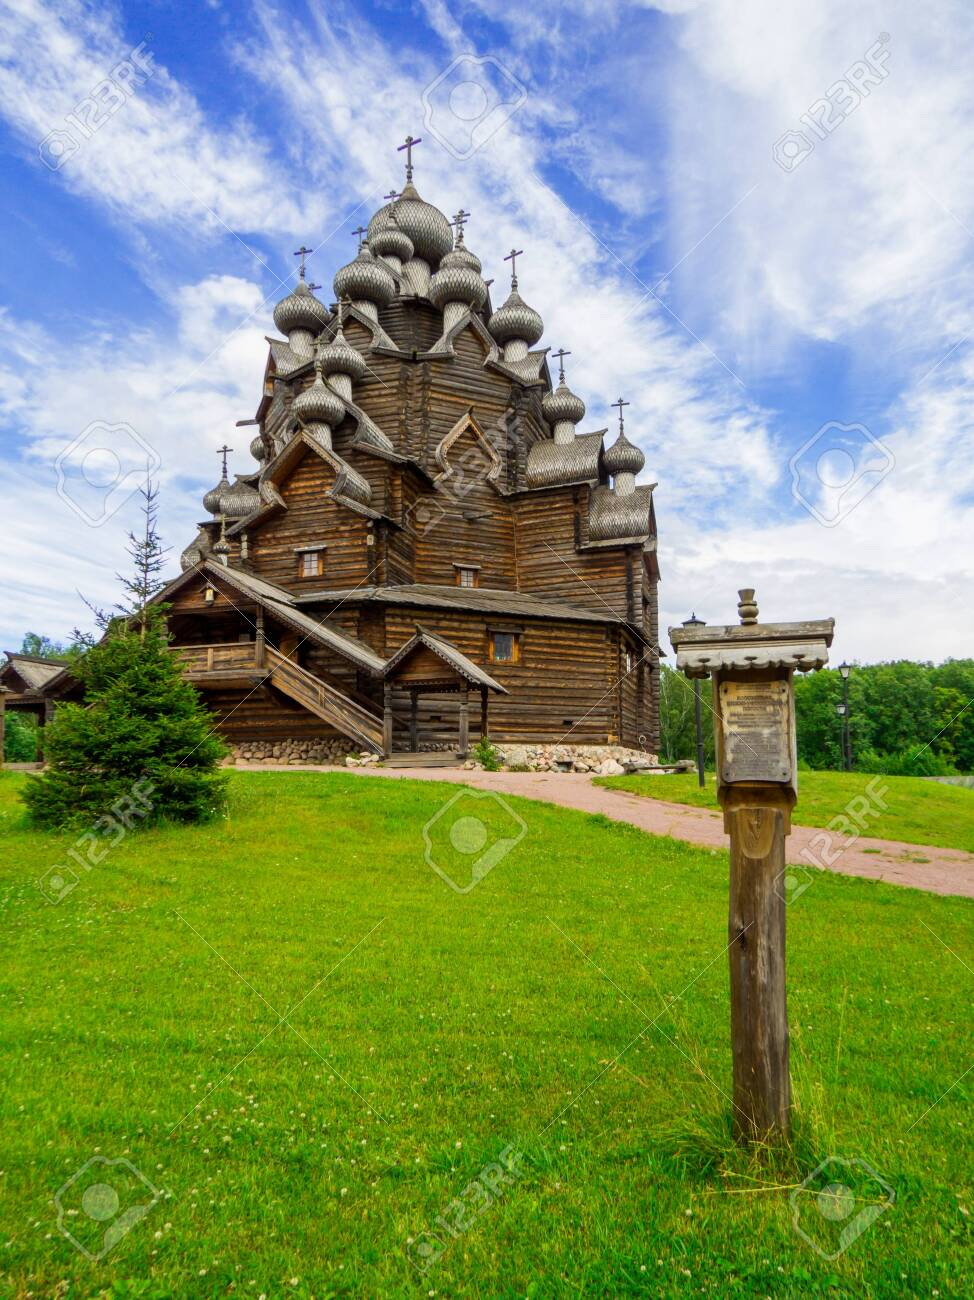 View of the wooden Church of the Intercession of the Holy Virgin in St. Petersburg, Russia - 151391734